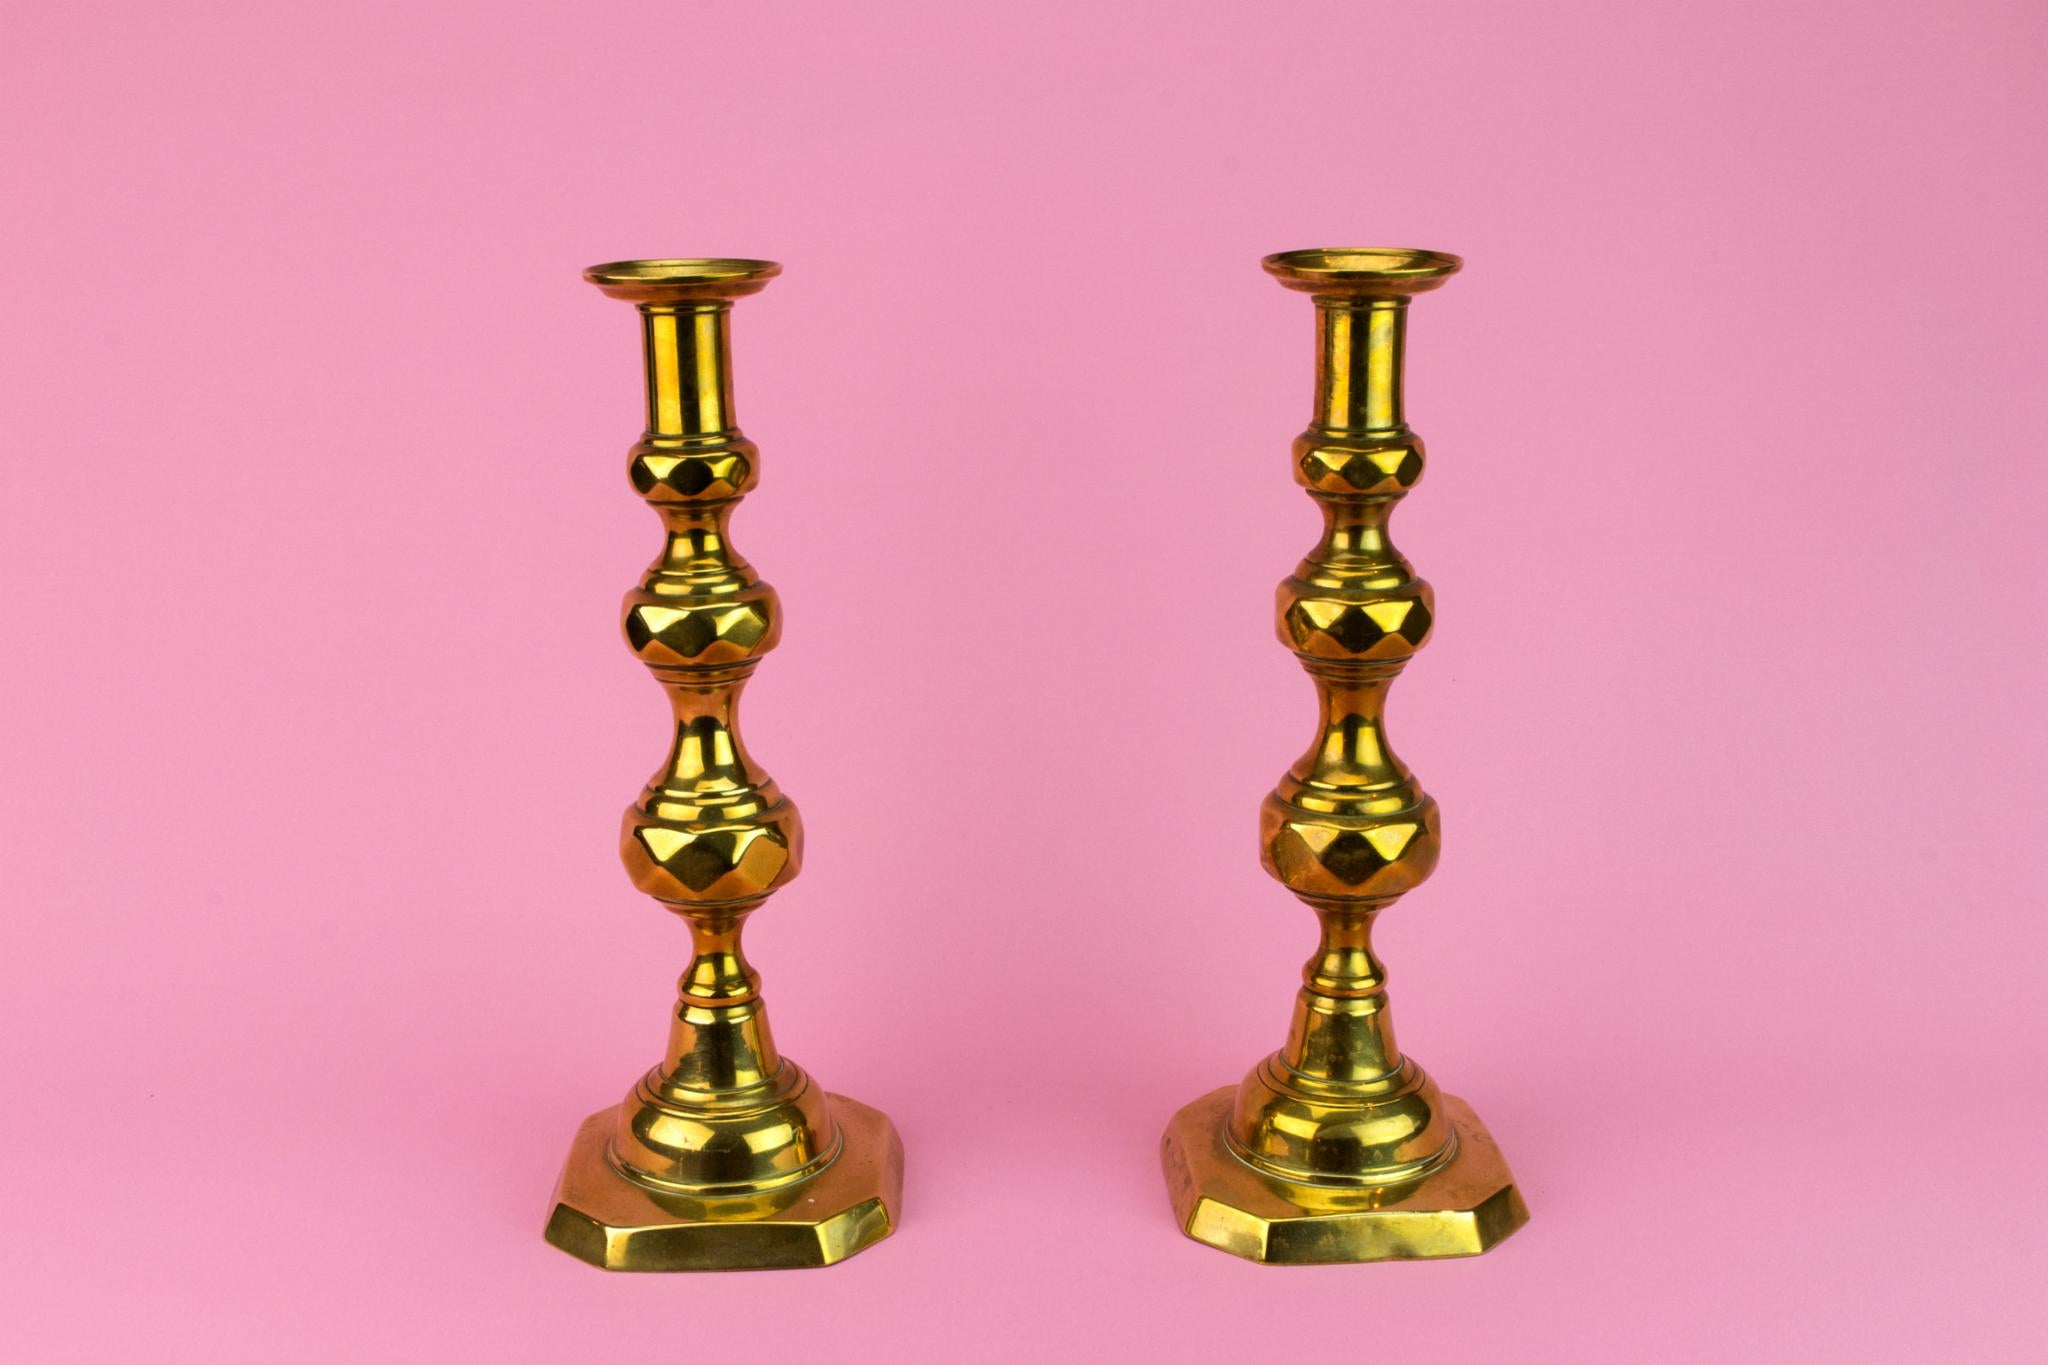 Pair Of Brass Tall Candlesticks, English 19th Century